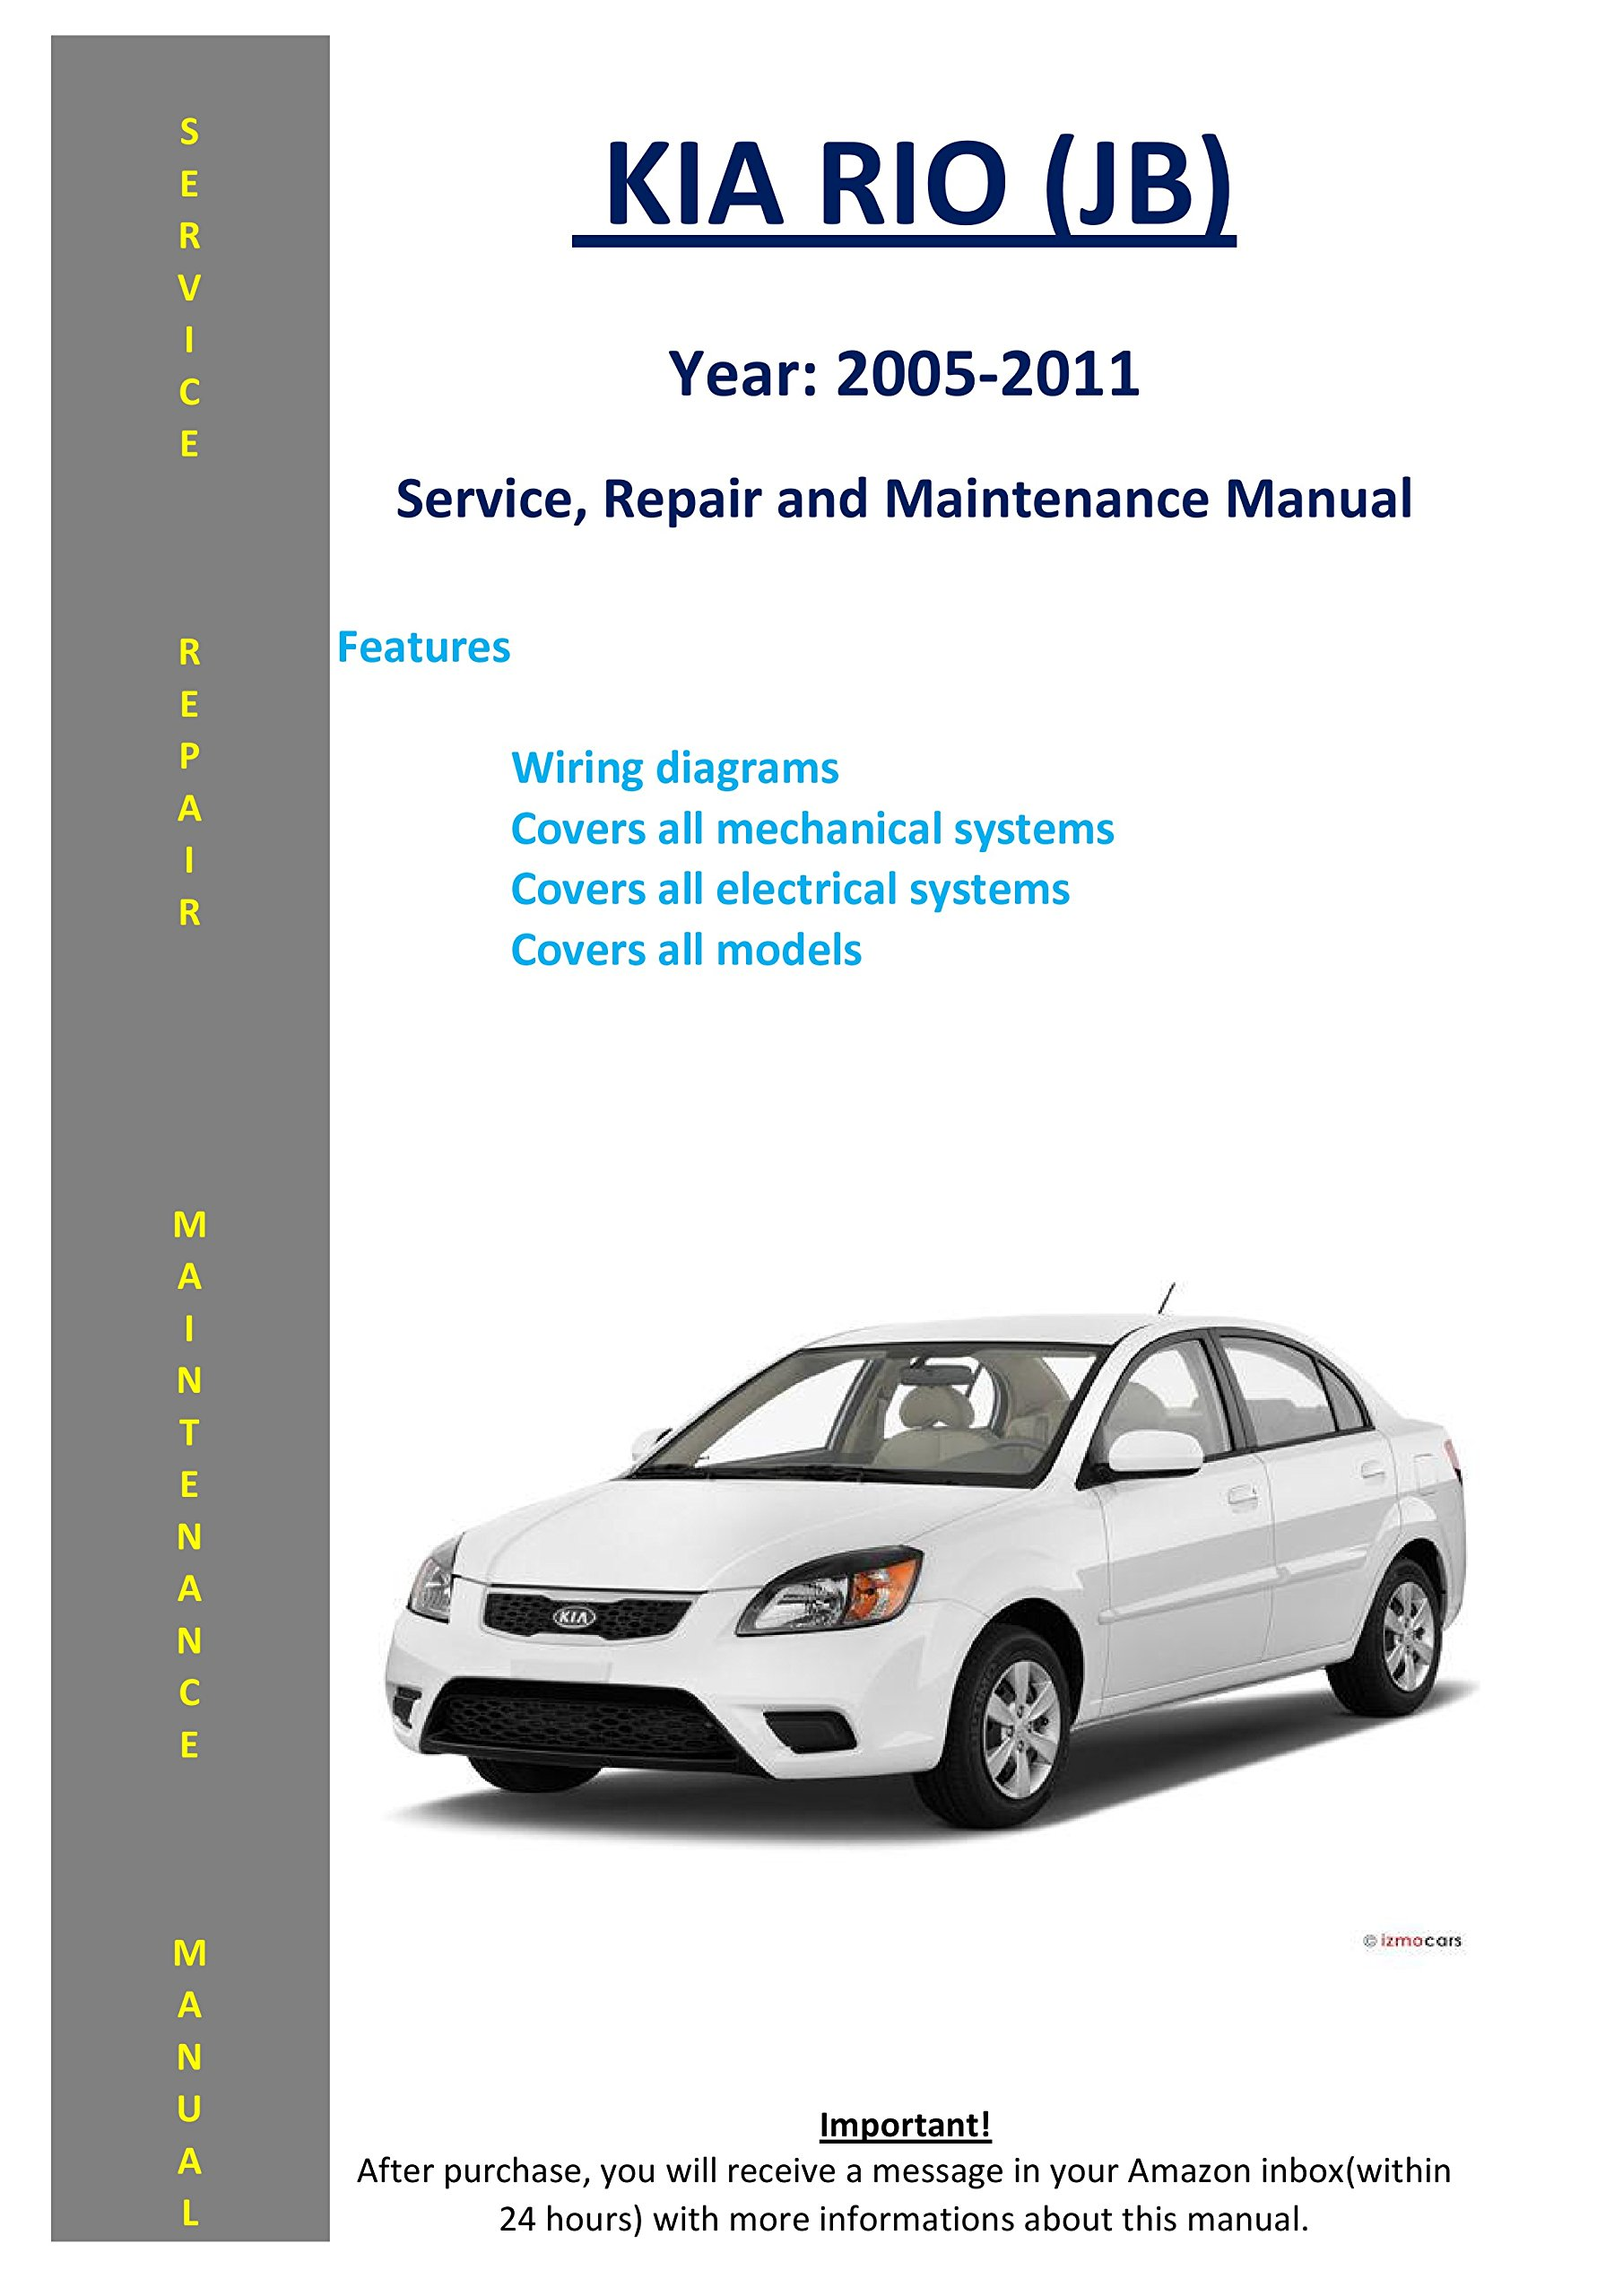 2001 kia rio repair manual free